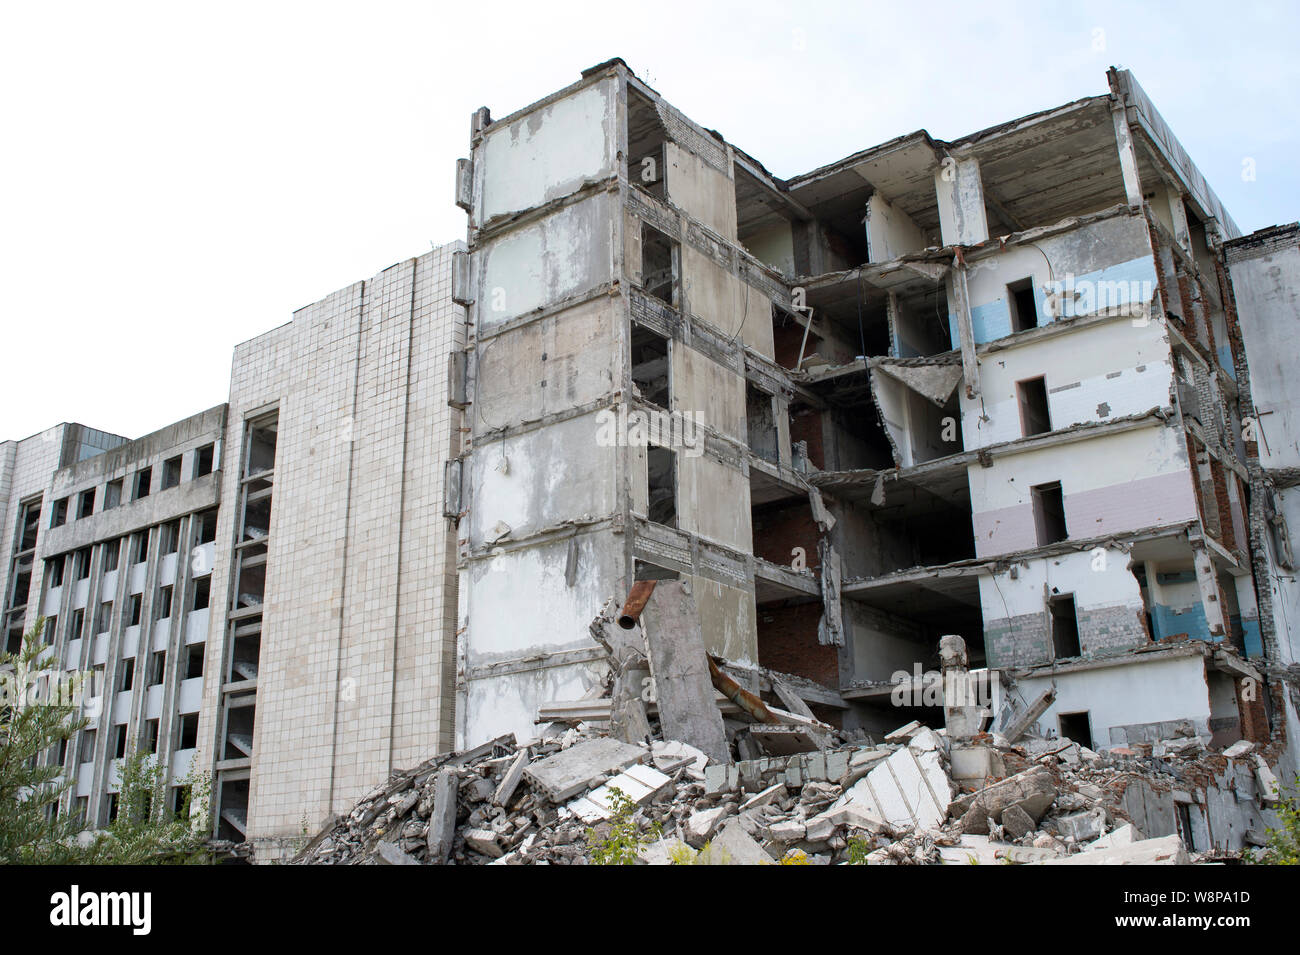 A pile of gray concrete debris with the remains of a large destroyed building. Background Stock Photo